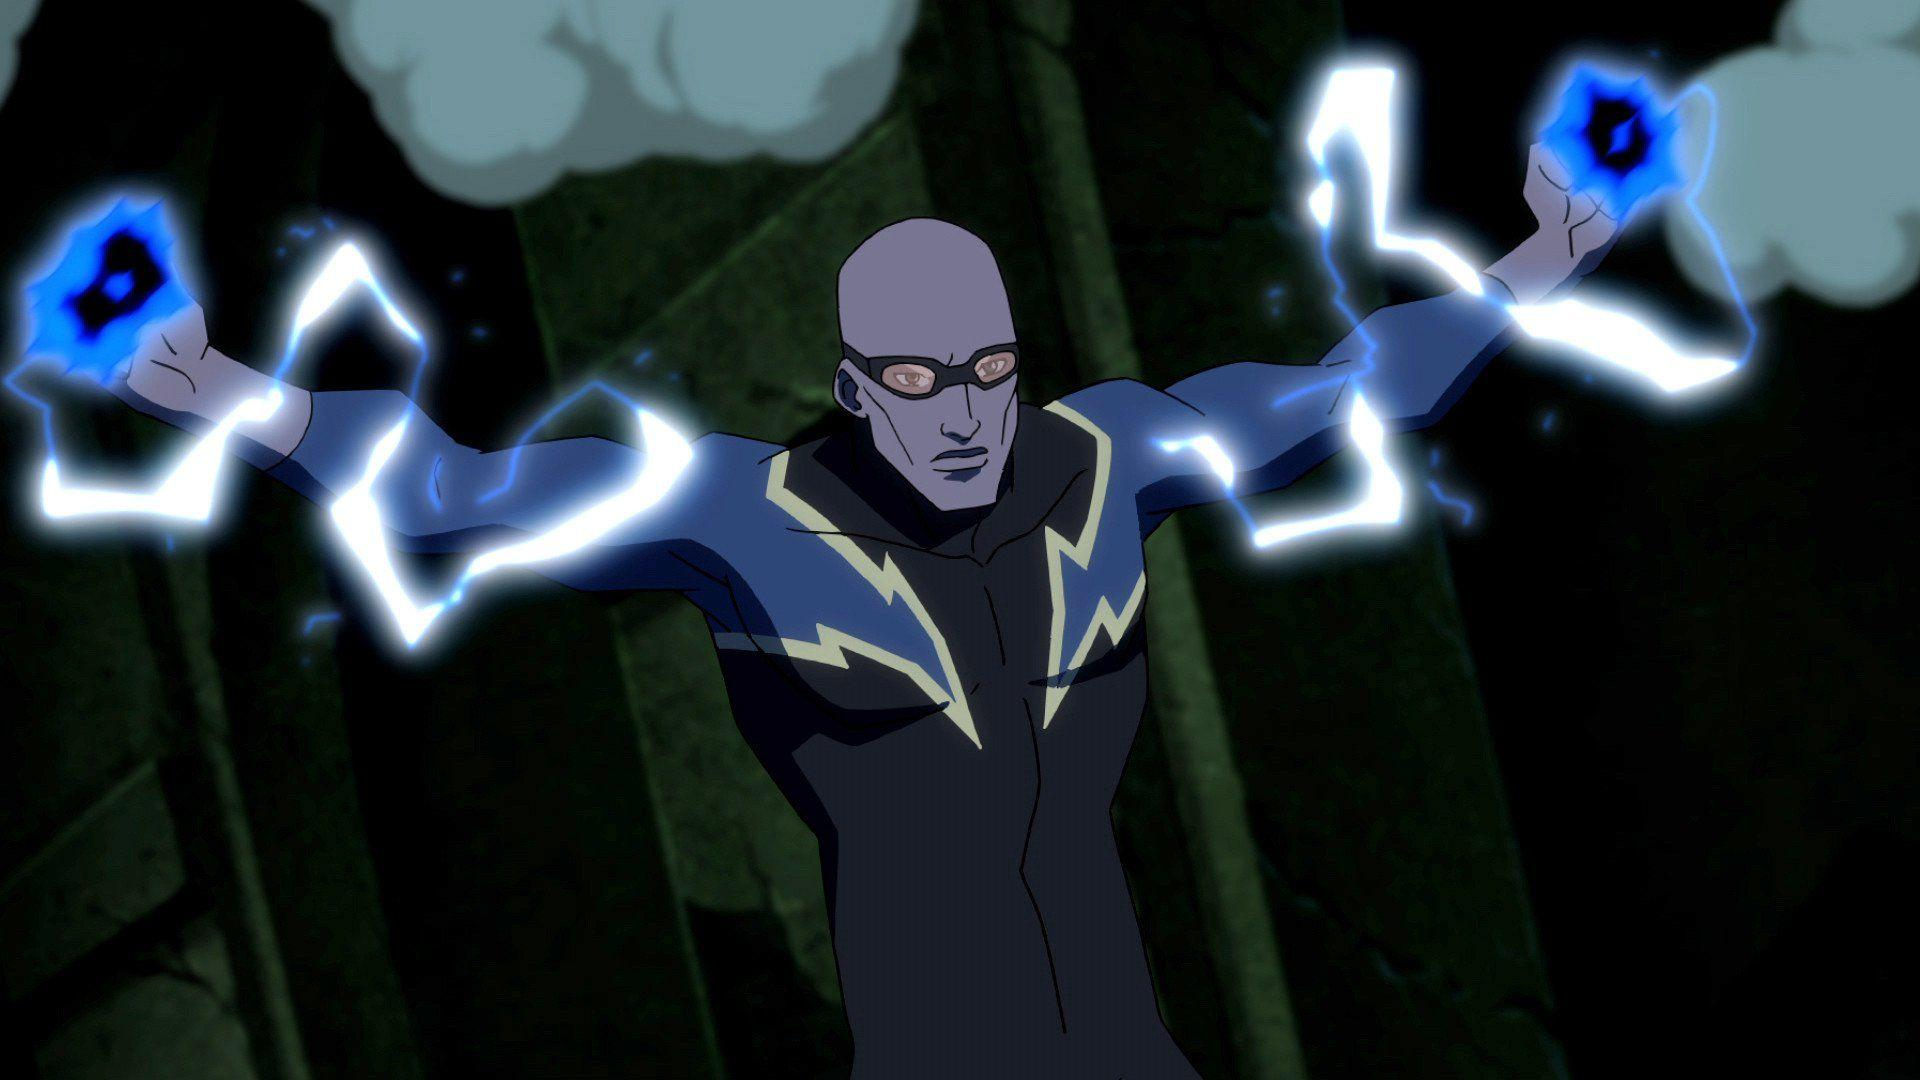 15 Black Lightning HD Wallpapers | Backgrounds - Wallpaper Abyss